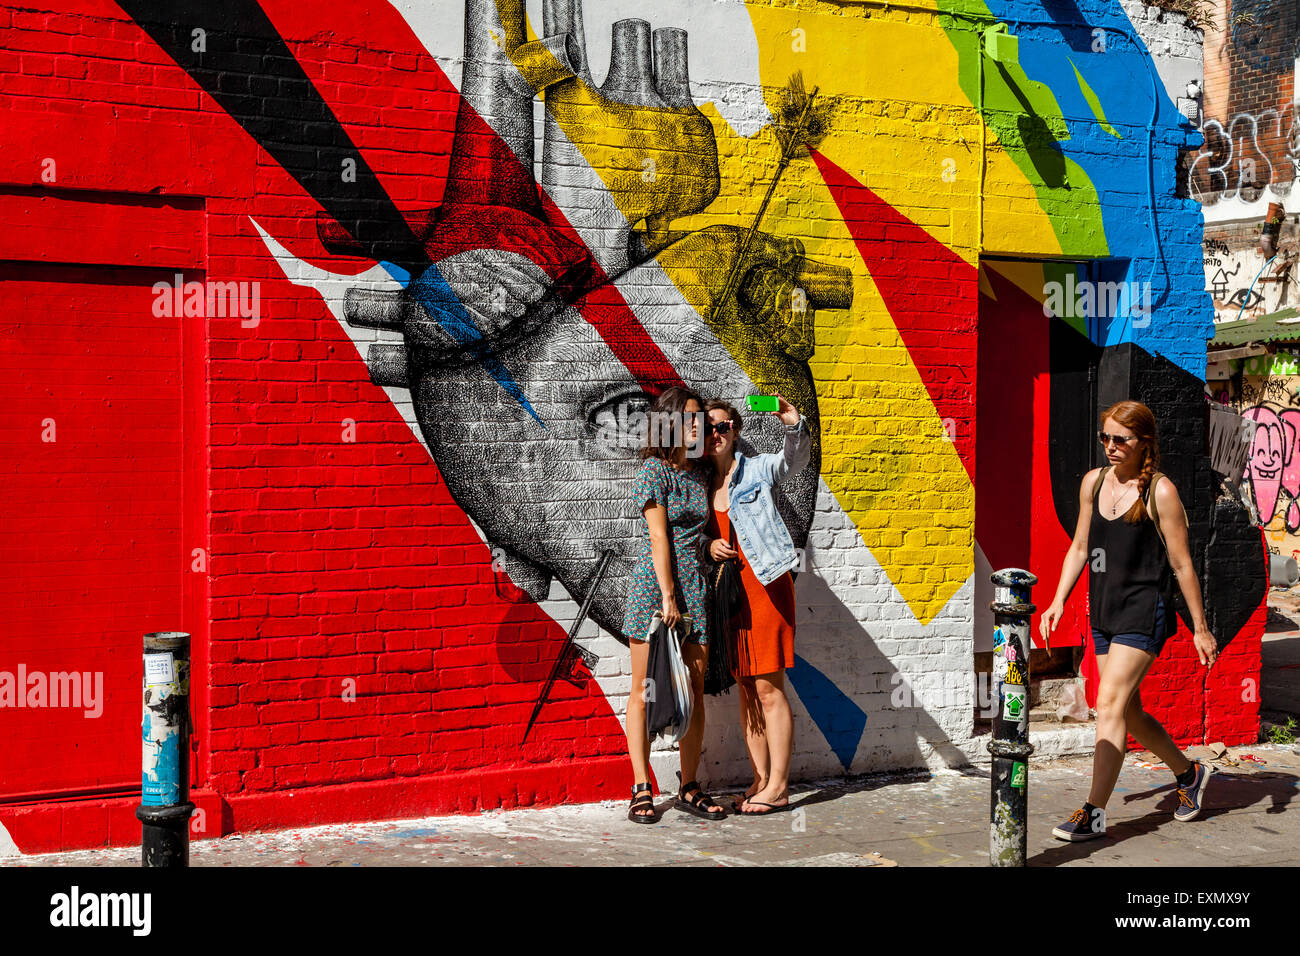 Young Women Pose For A selfie In Front Of Some Street Art/Graffiti, Brick Lane, London, England - Stock Image